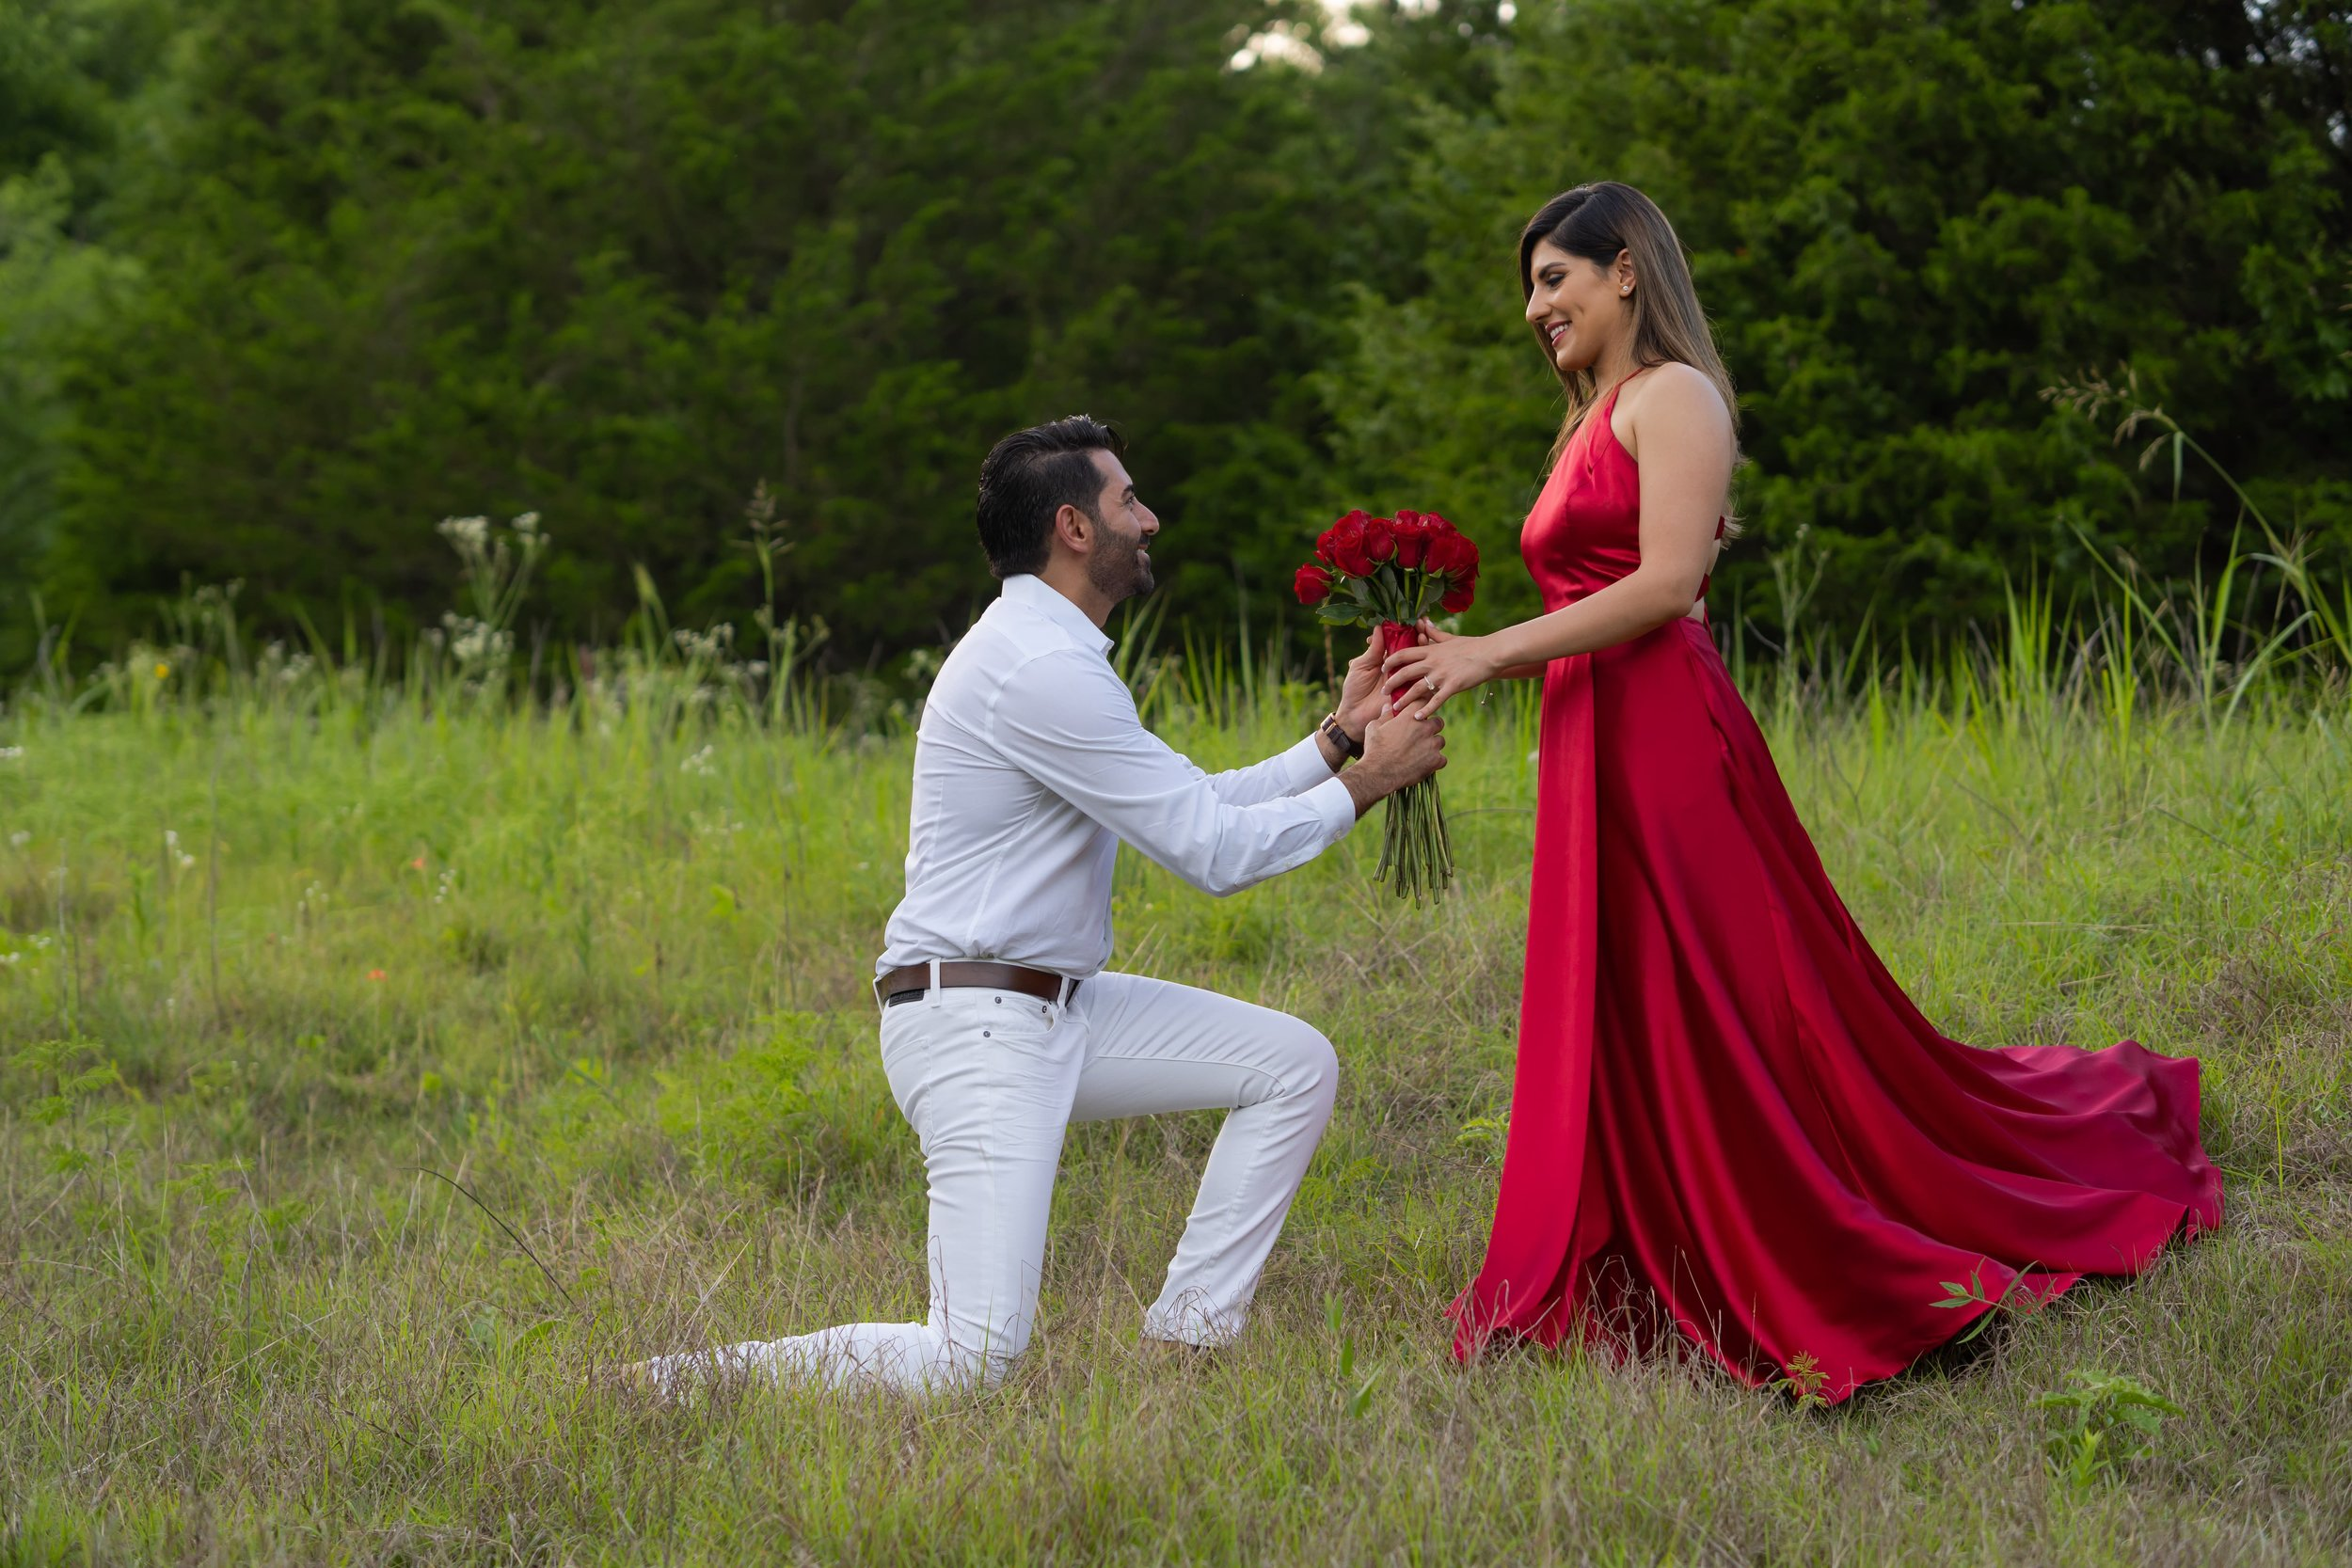 Engagement Photography Services, Lucas, TX - Man on one knee giving woman in red dress flowers.